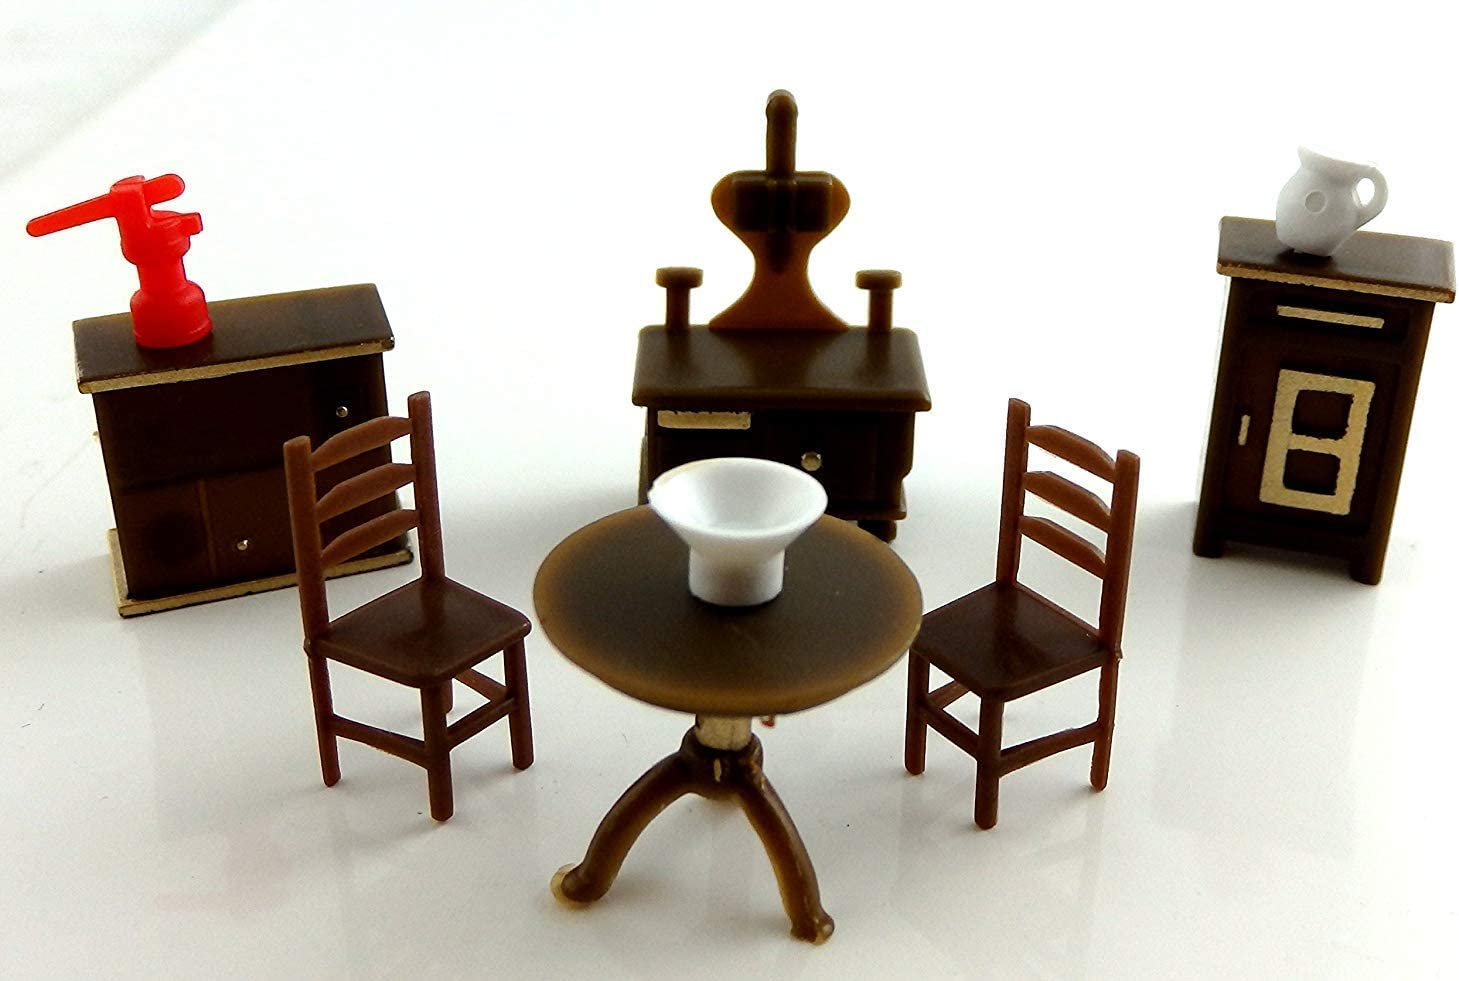 1//48 SCALE MINIATURE FURNITURE HANDCRAFTED WELL MADE BEAUTIFUL KITCHEN SET